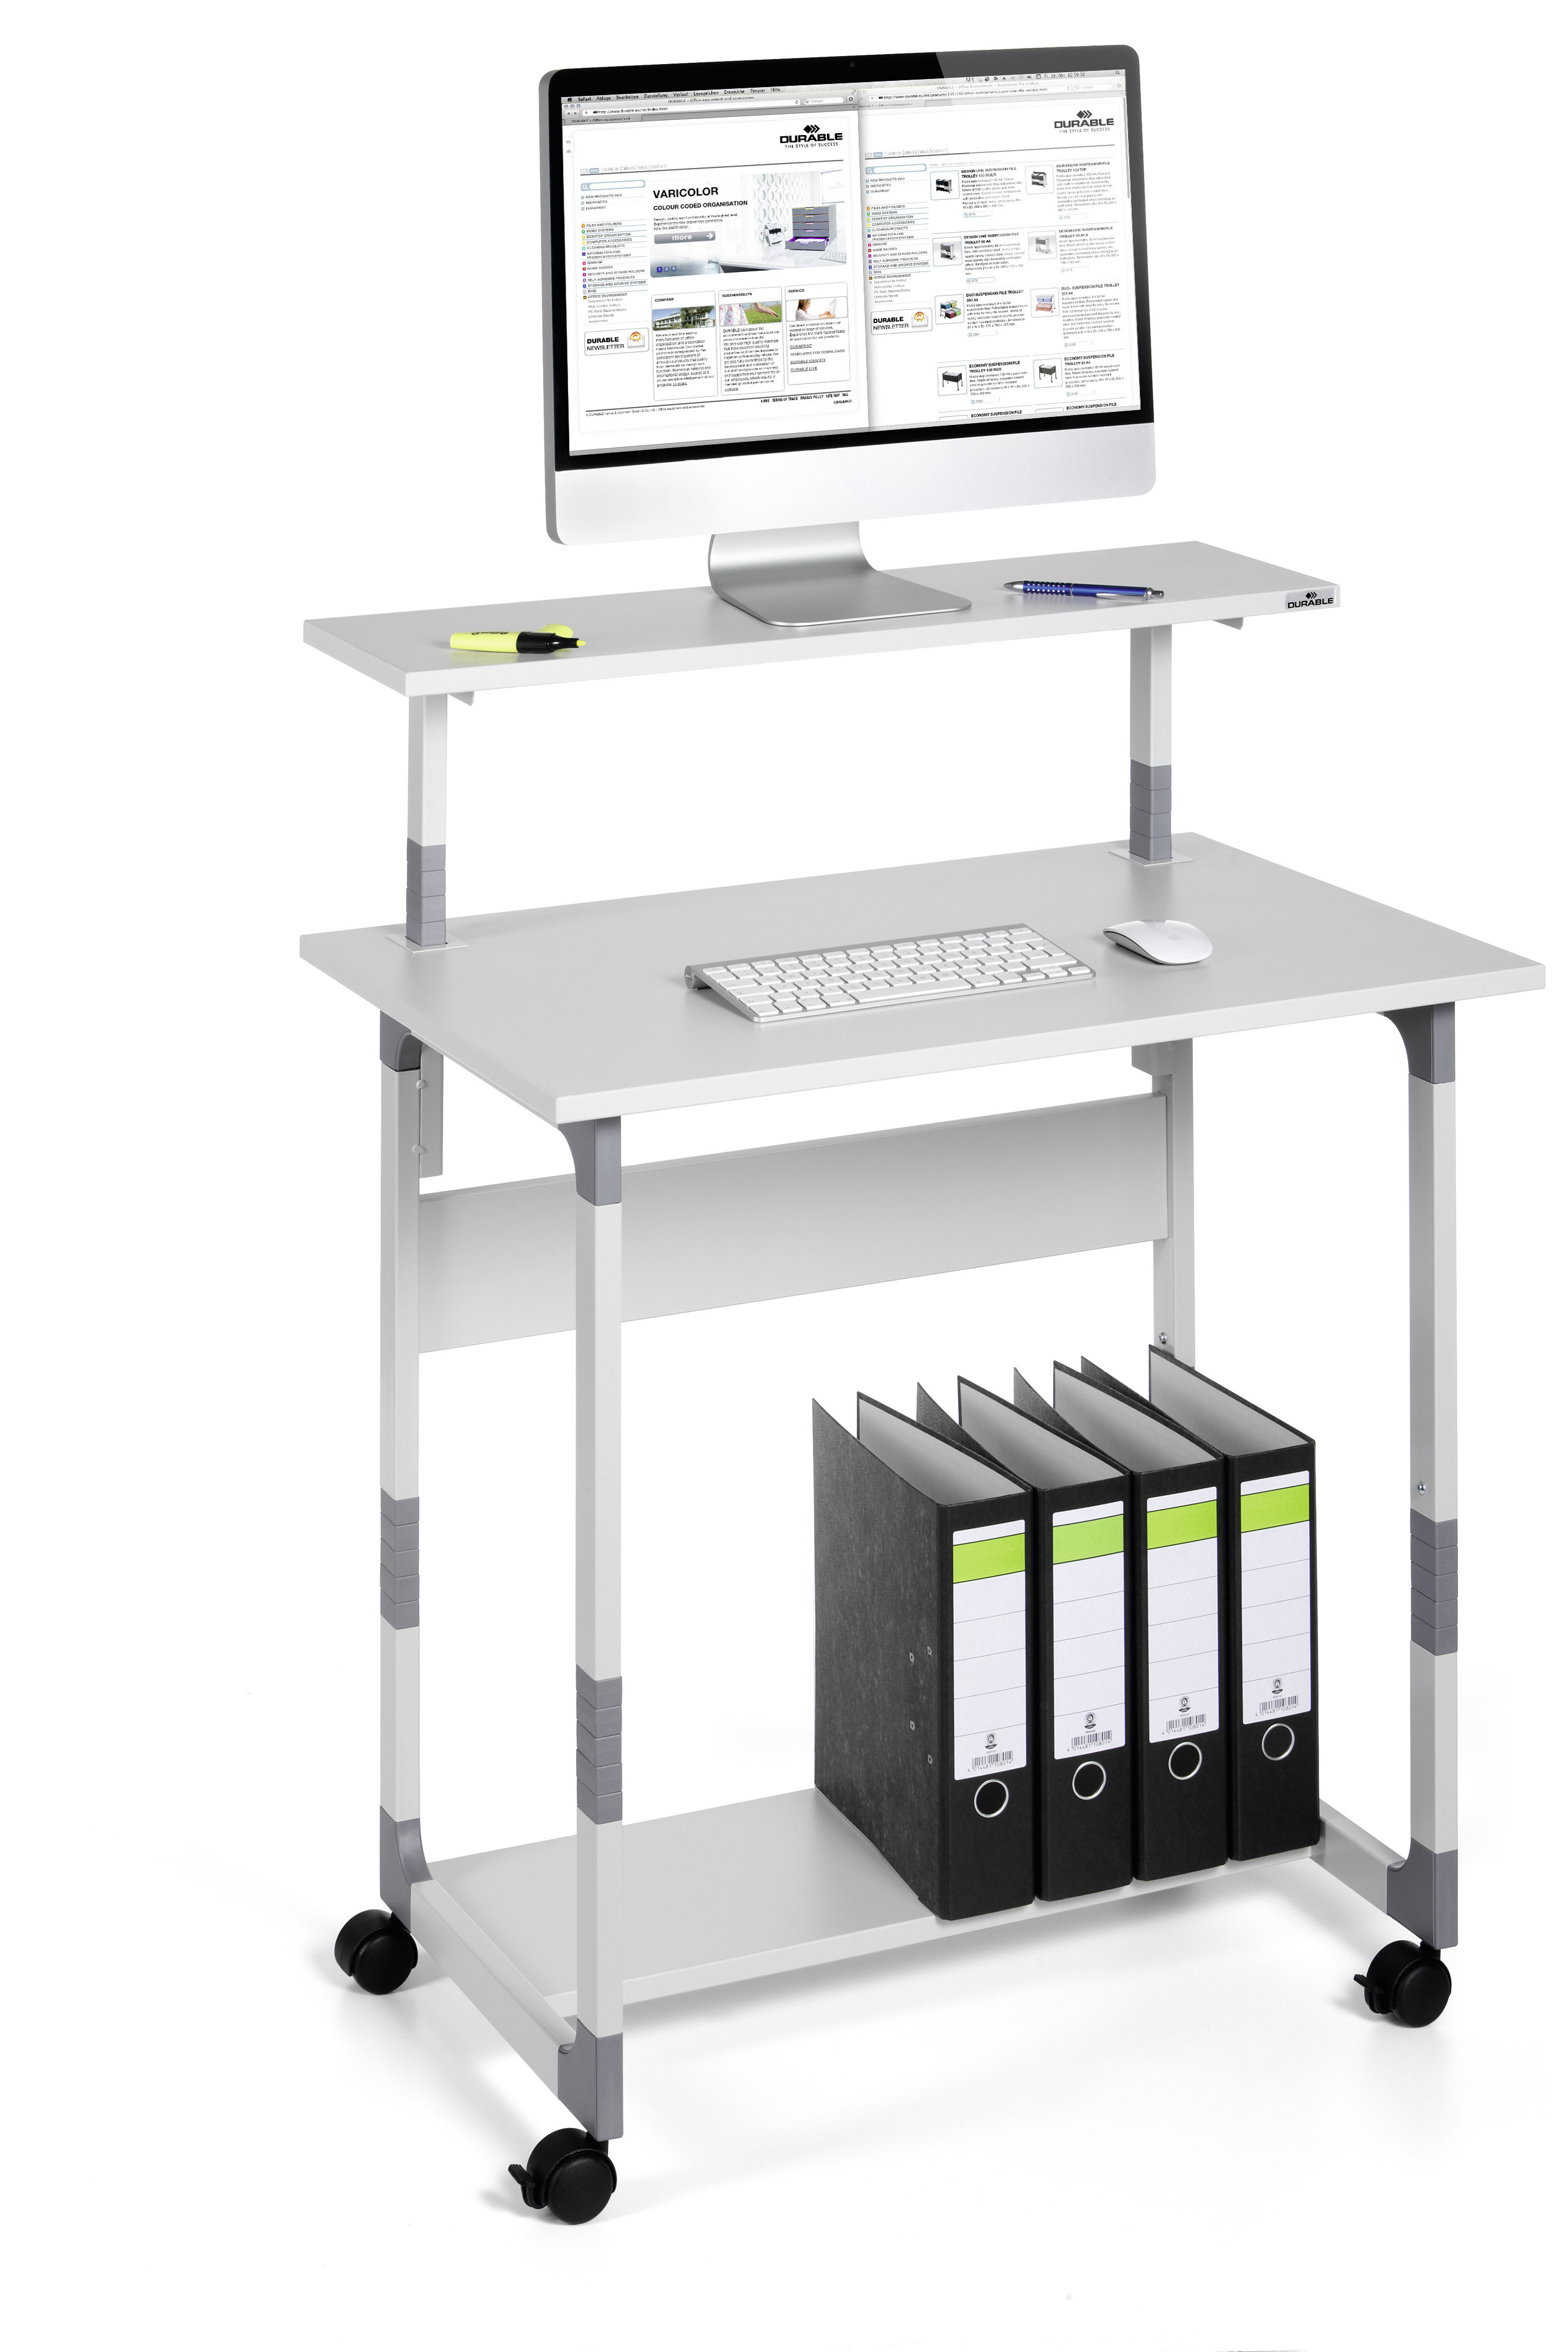 DURABLE SYSTEM COMPUTER TROLLEY 80 VH 1 ST Z371899